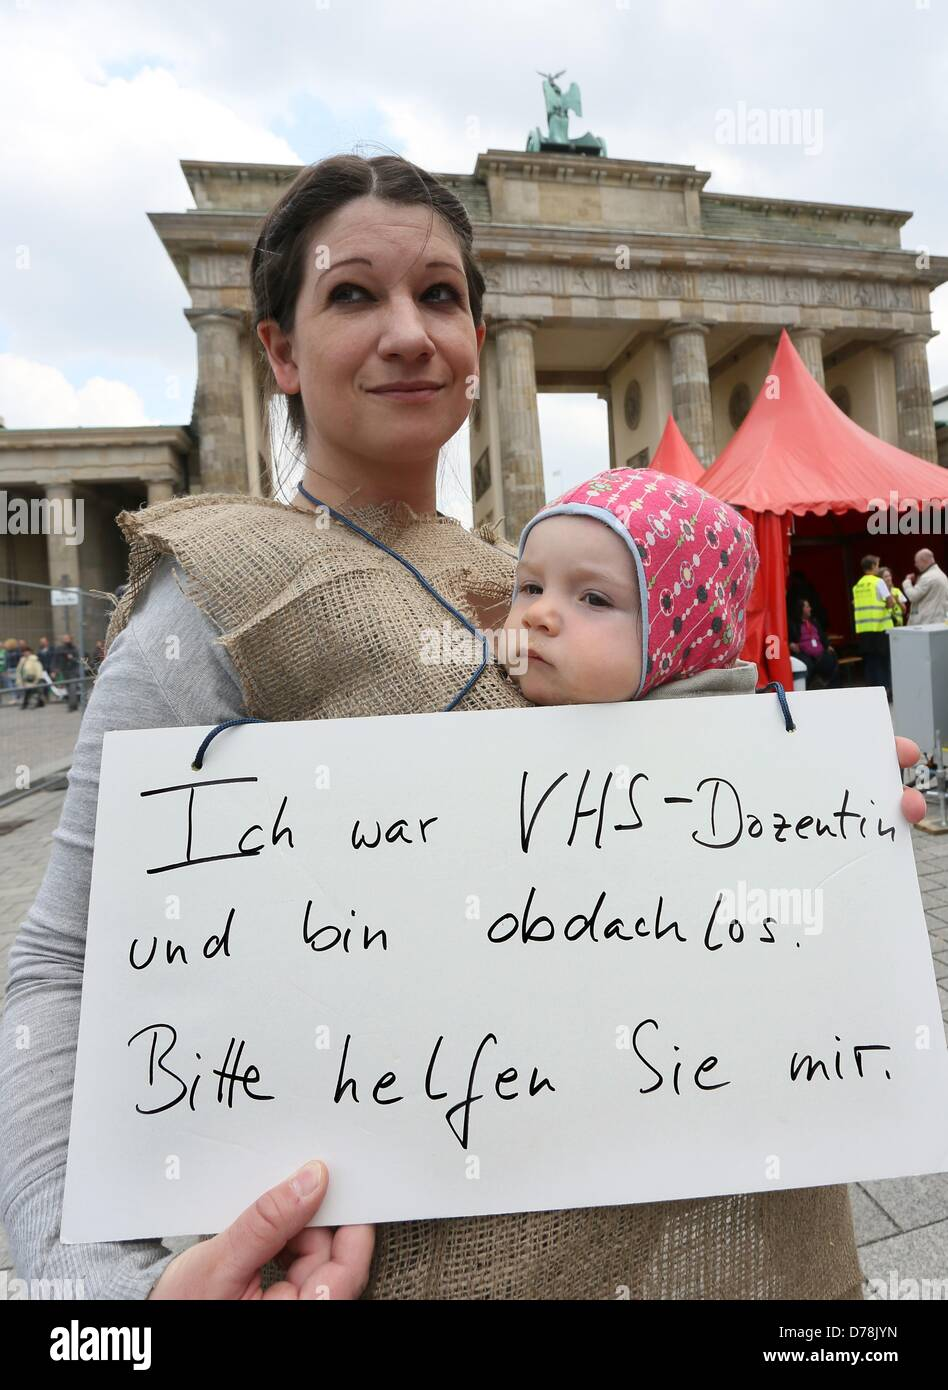 Berlin, Germany. 1st May 2013. 'Ich war VHS-Dozentin und bin obdachlos' ('I used to be a lecturer at - Stock Image